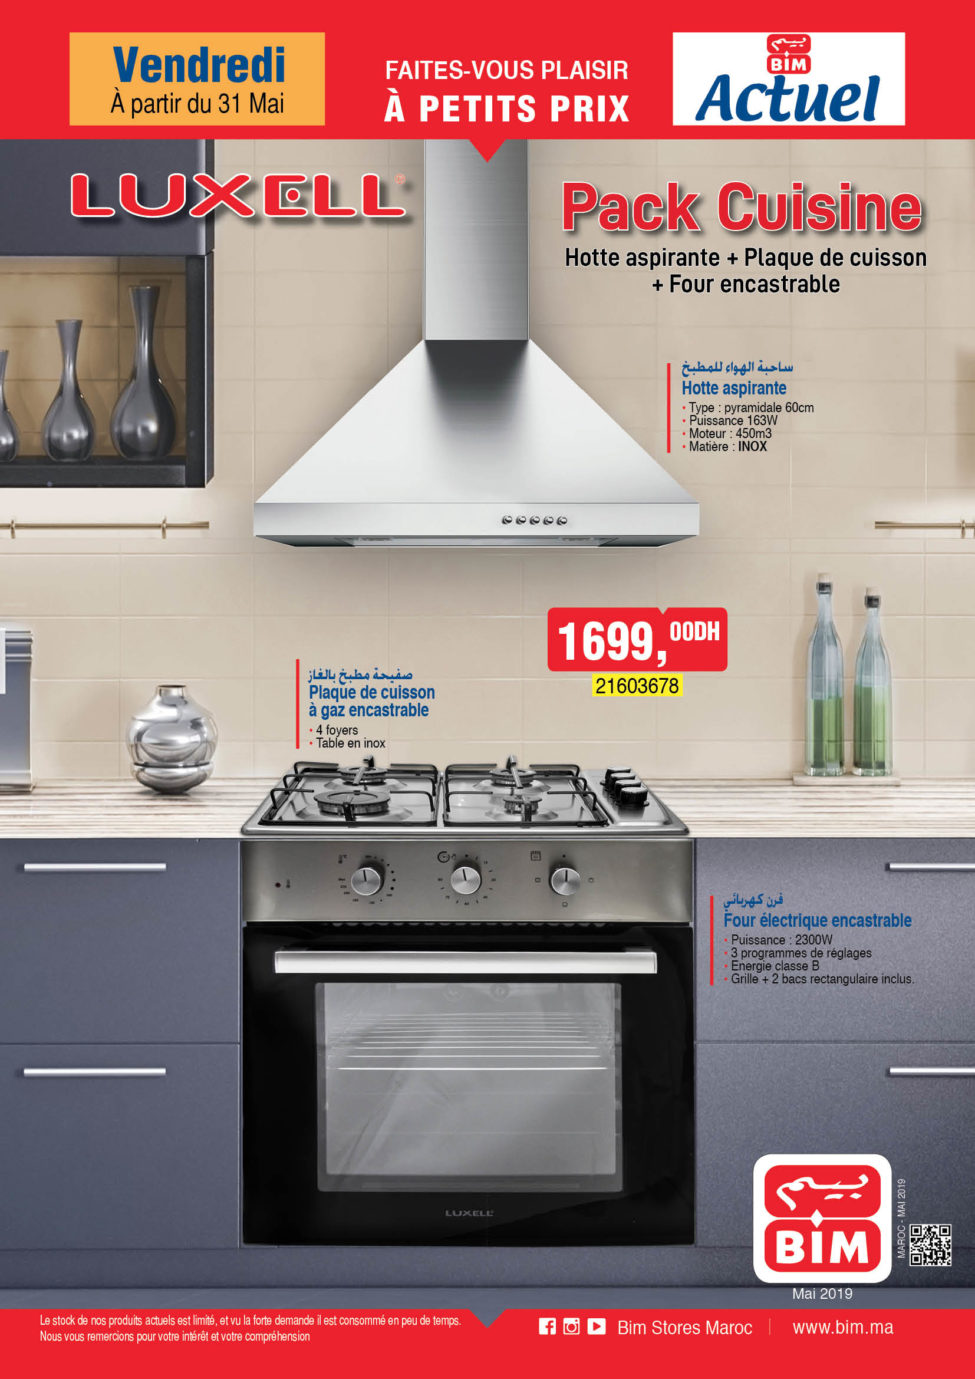 Flyer Bim Maroc Pack cuisine LUXELL 1699Dhs